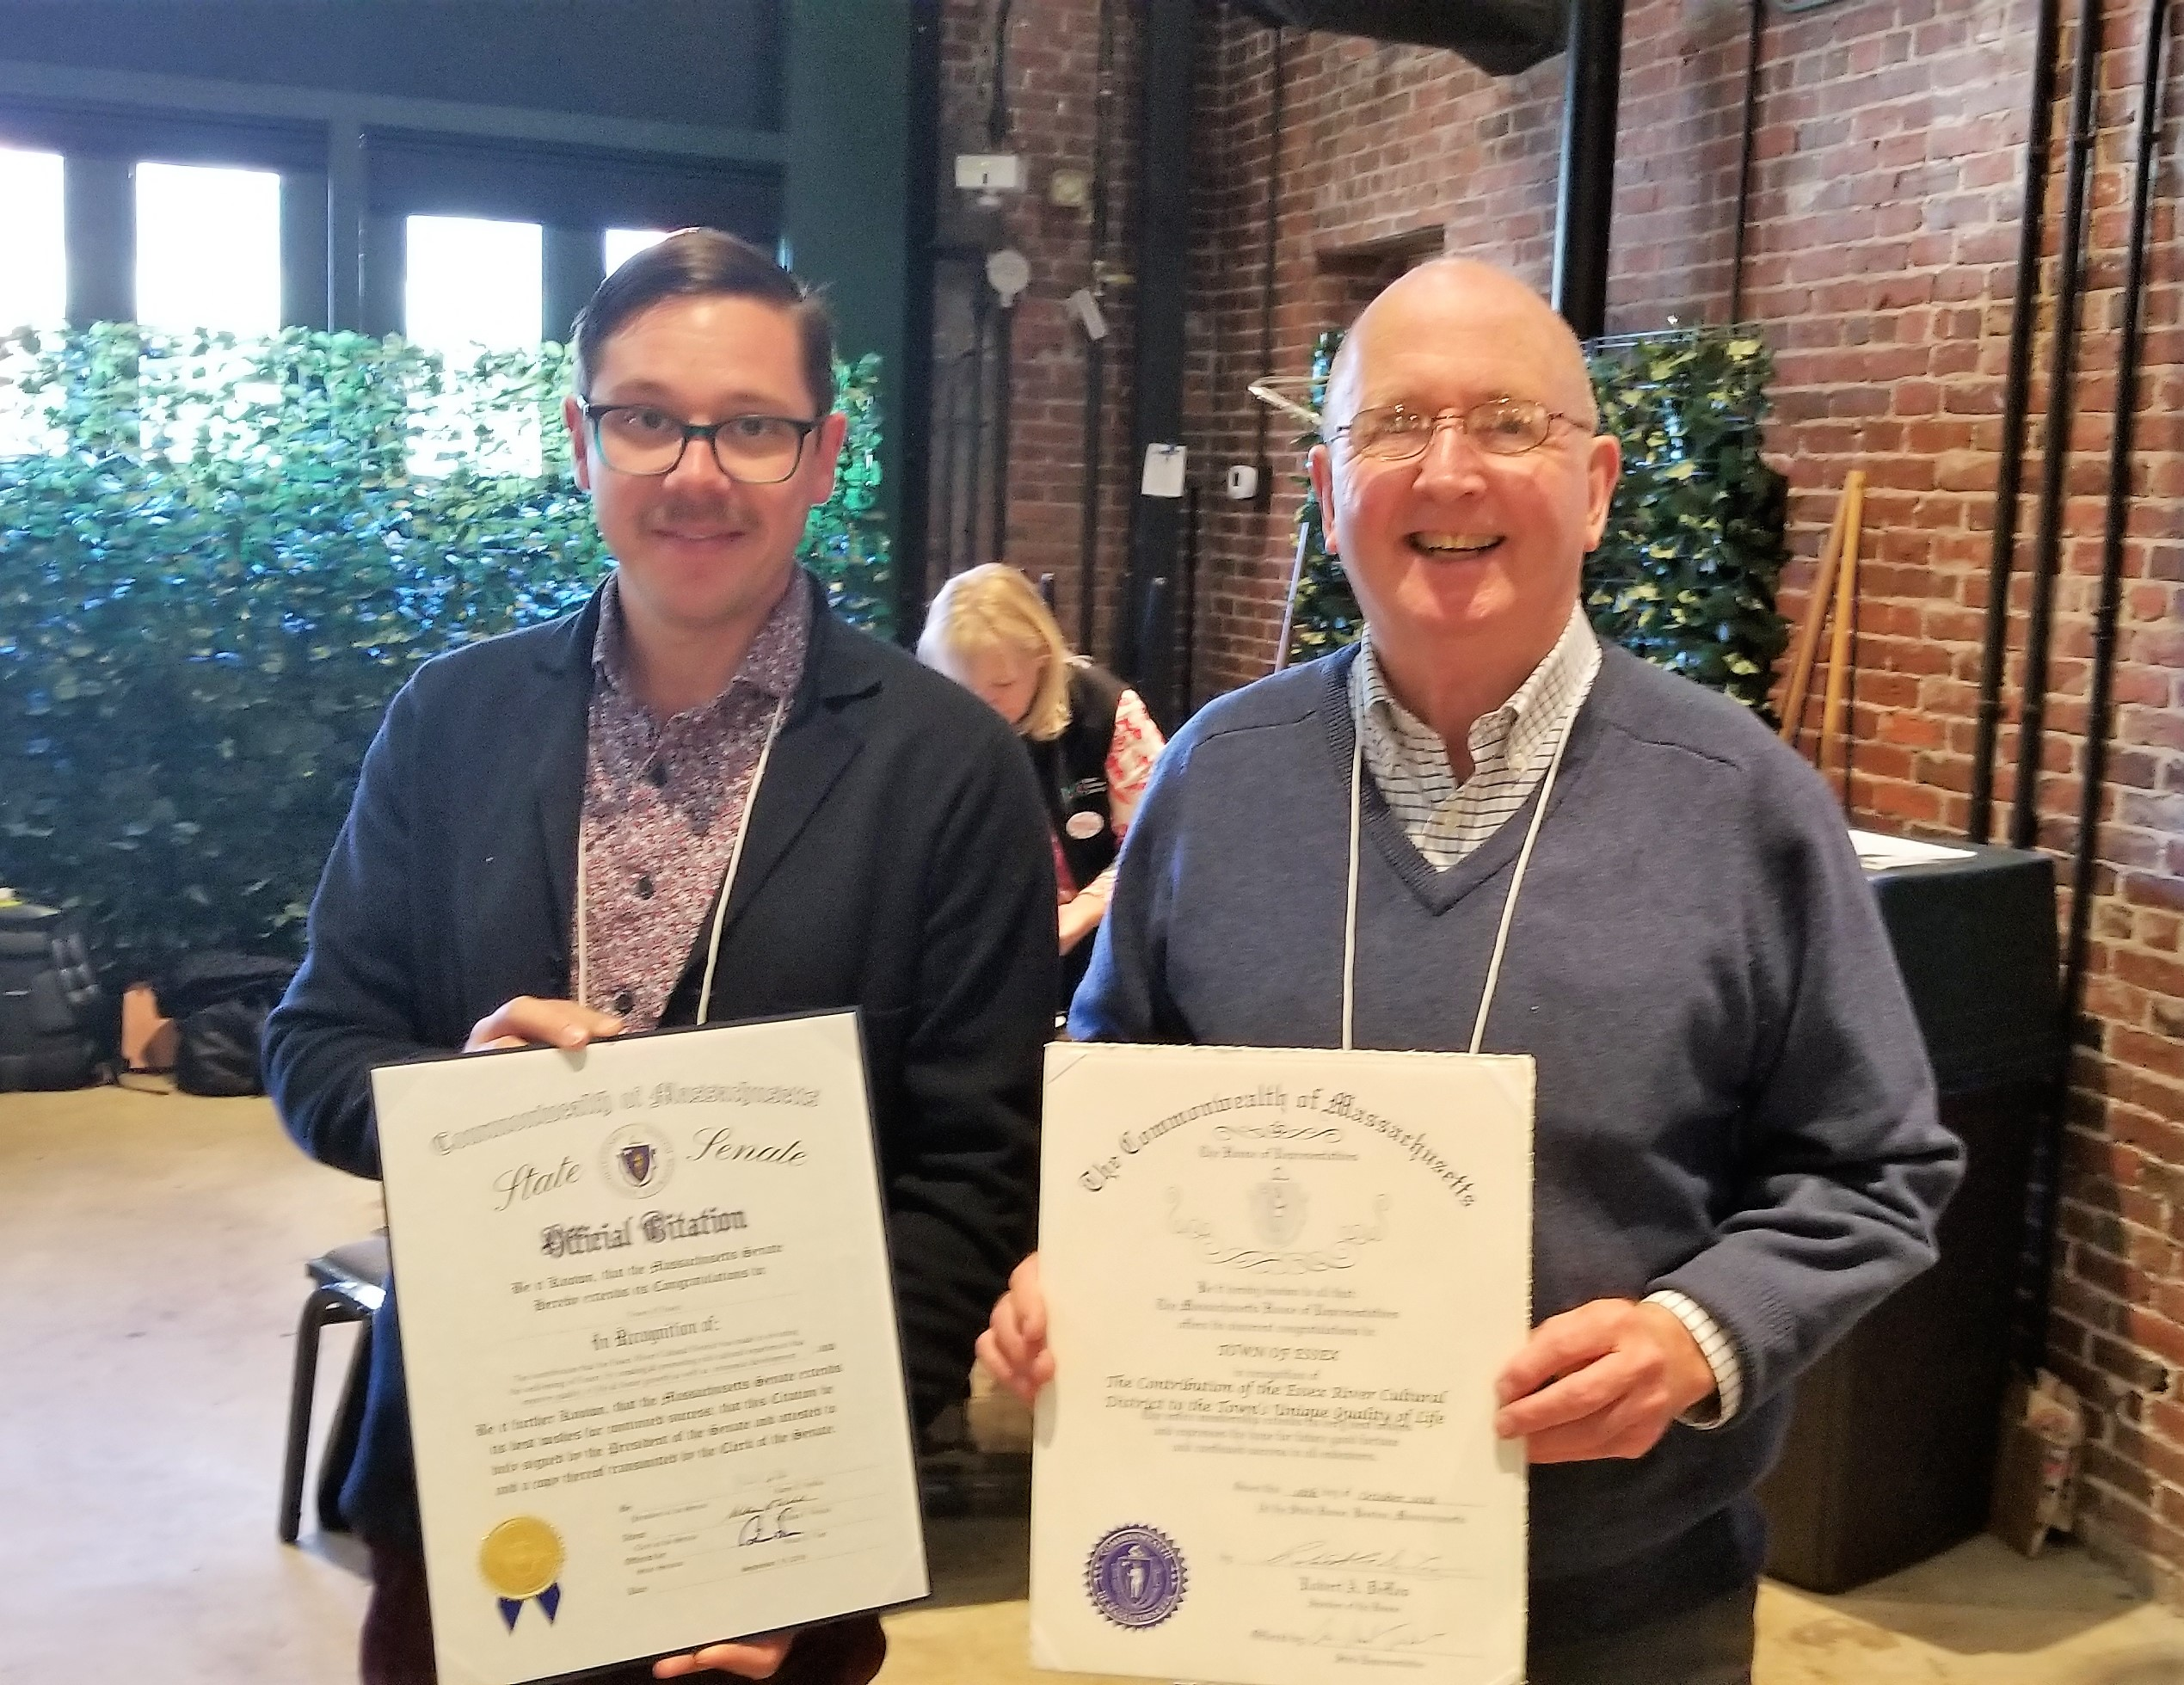 courtesy photo_Essex District renewal_MCC cultural district convening at Natick Center for the Arts October 16 2018.jpg